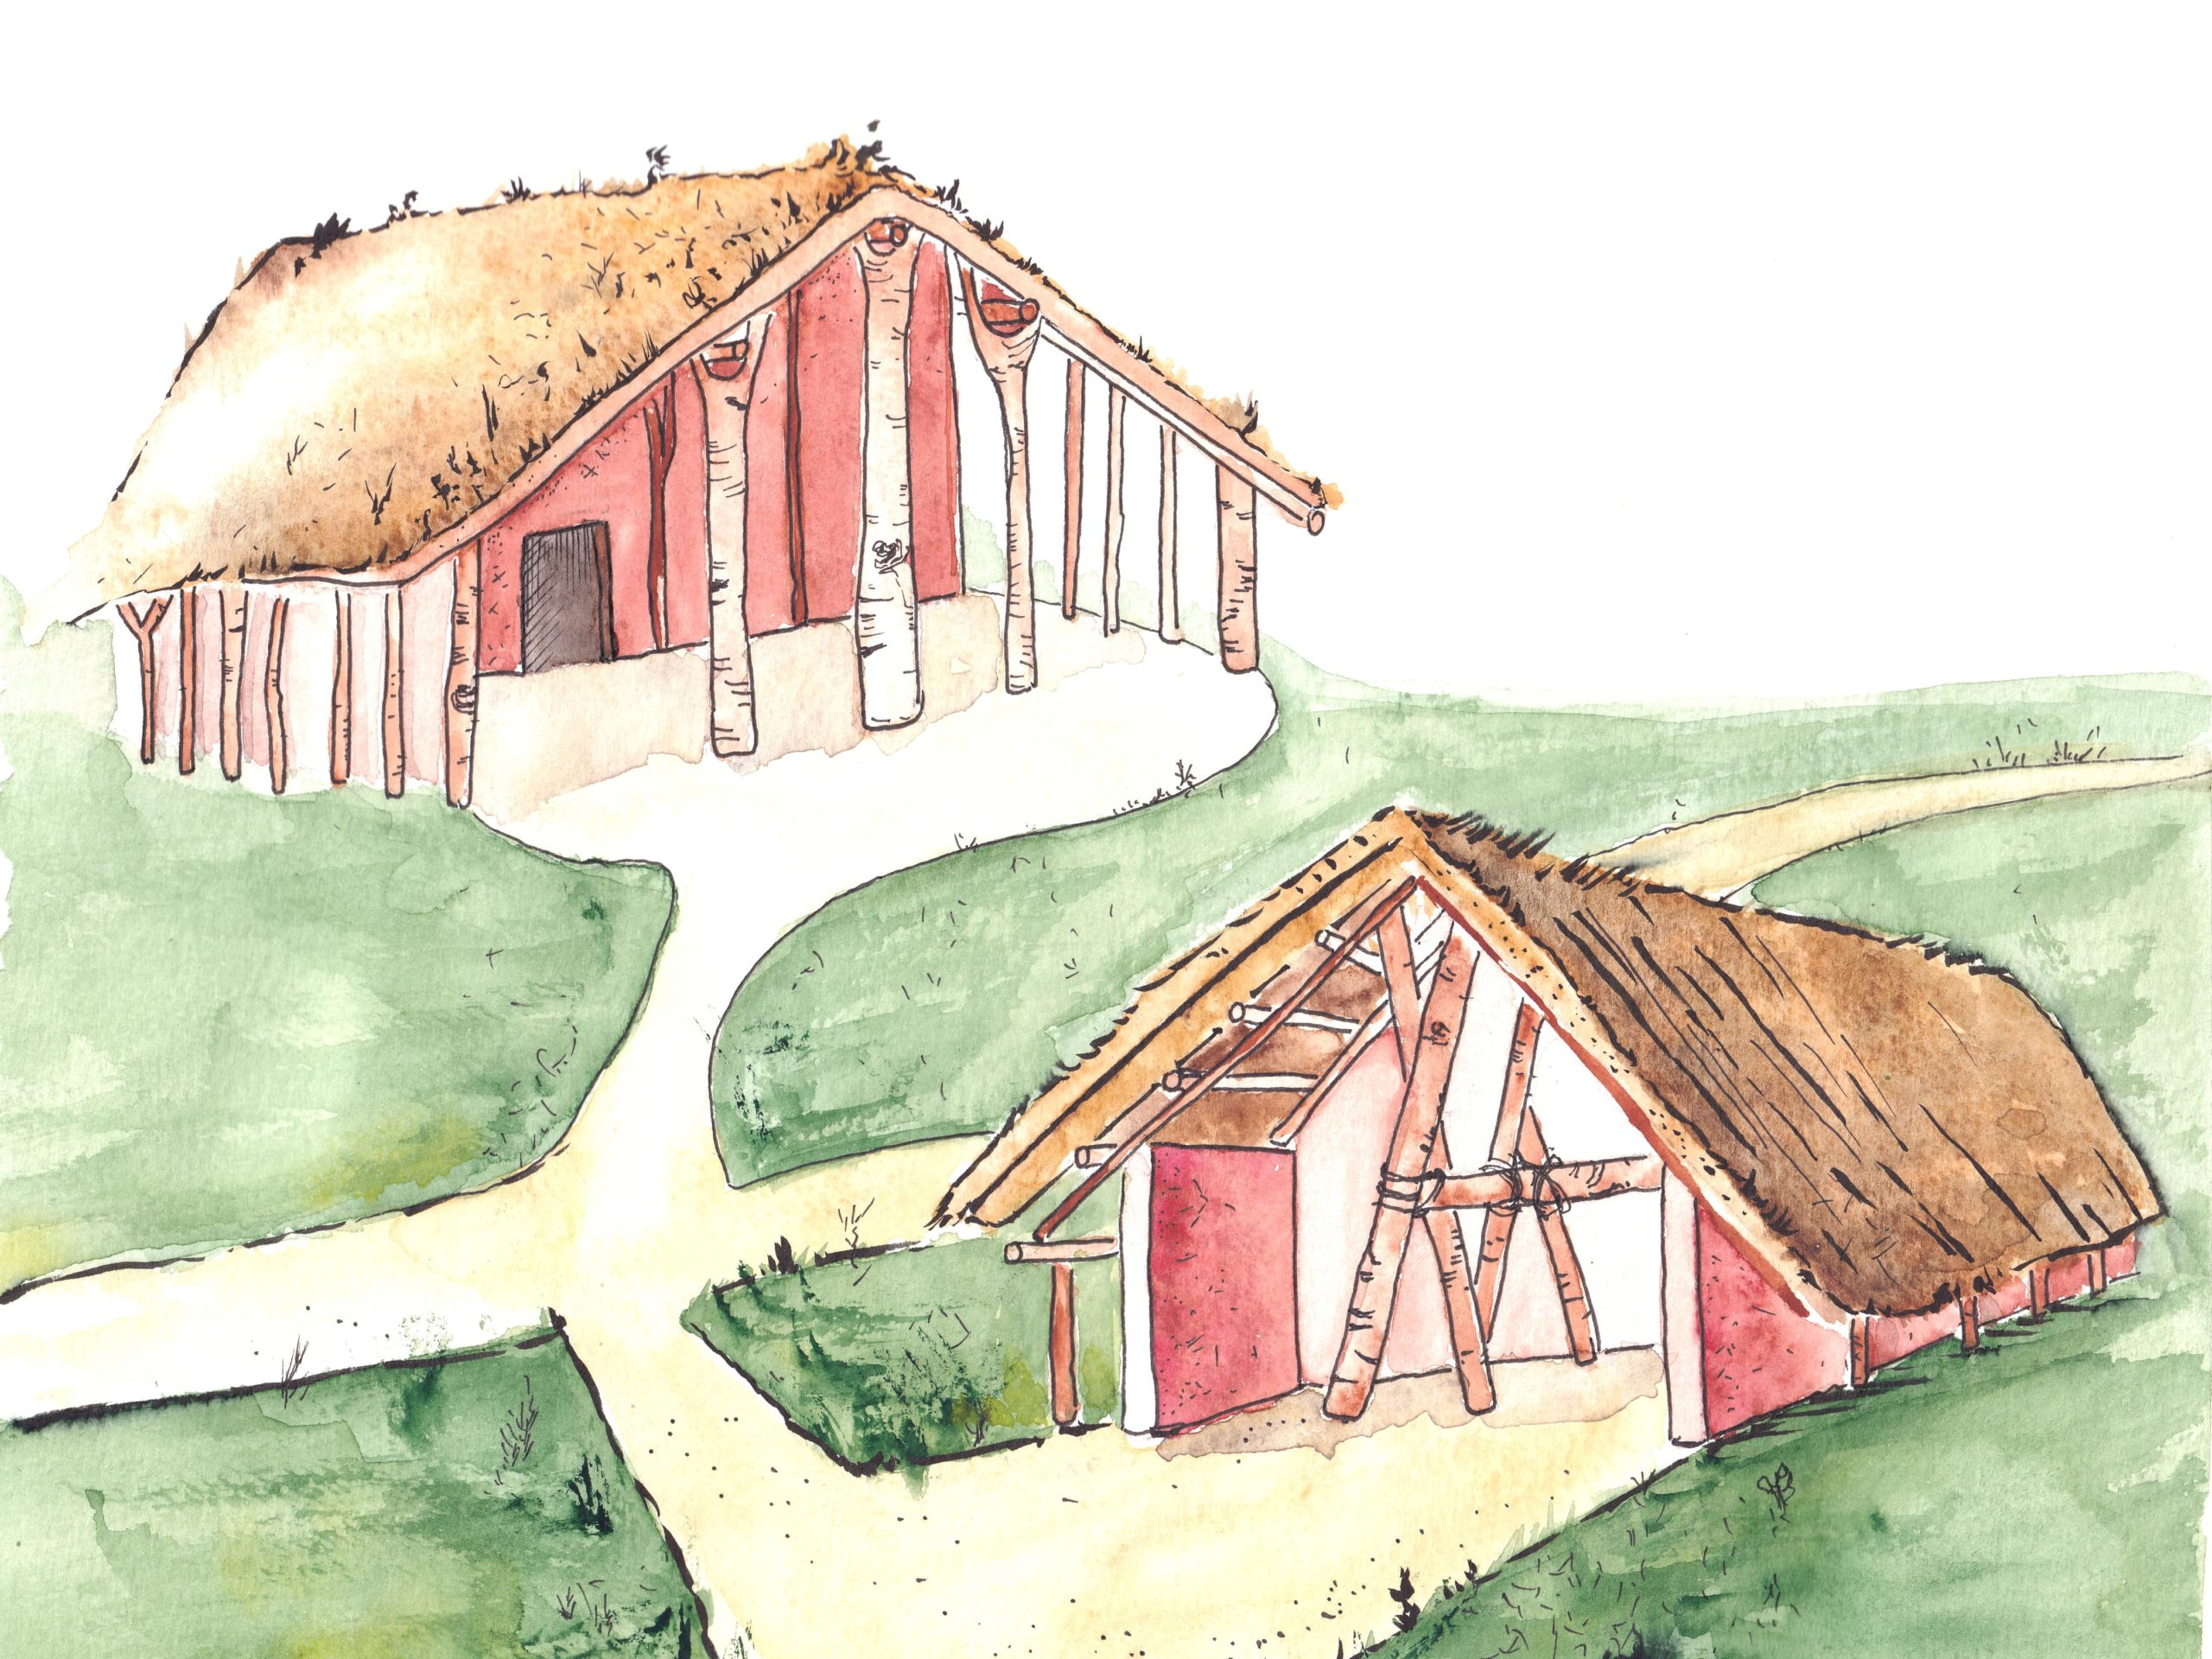 Drawing of a Stone Age landscape with two huts